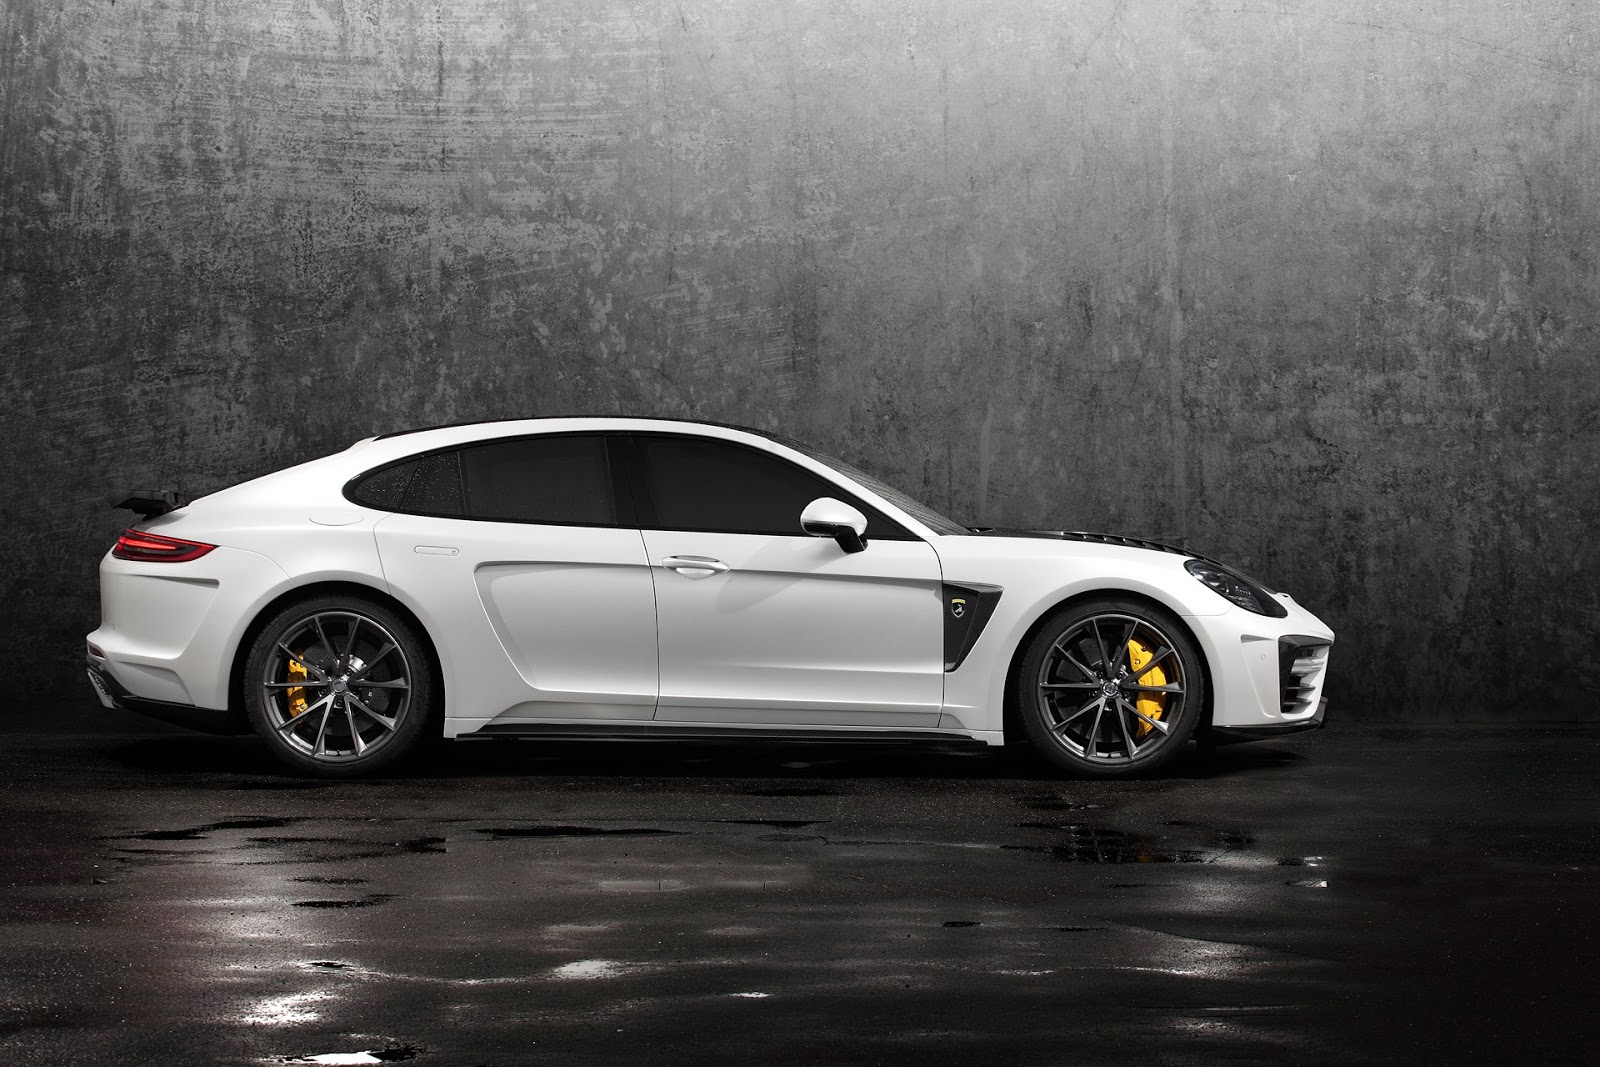 Topcar Package For New Porsche Panamera Is Extreme